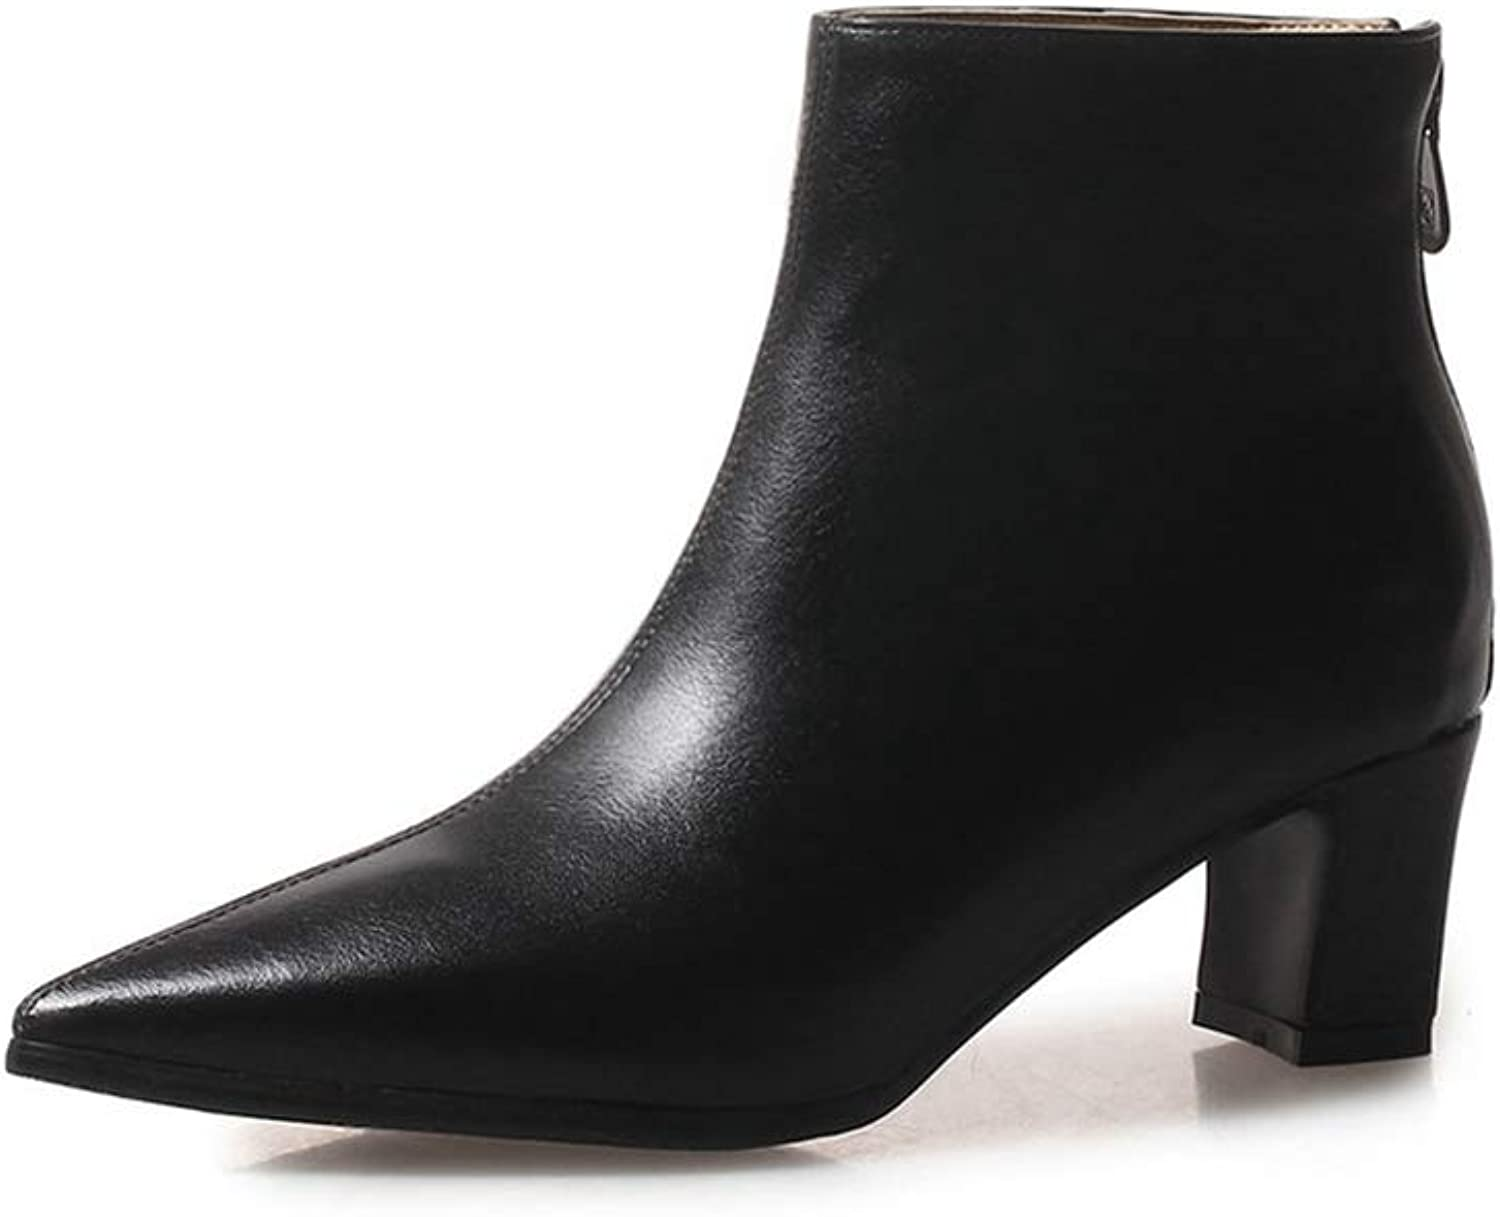 Zarbrina Womens Low Square Heel Ankle Boots Ladies Fashion Pointed Toe Casual Soft Rubber Sole Slip On Synthetic Winter Warm Party Dress shoes